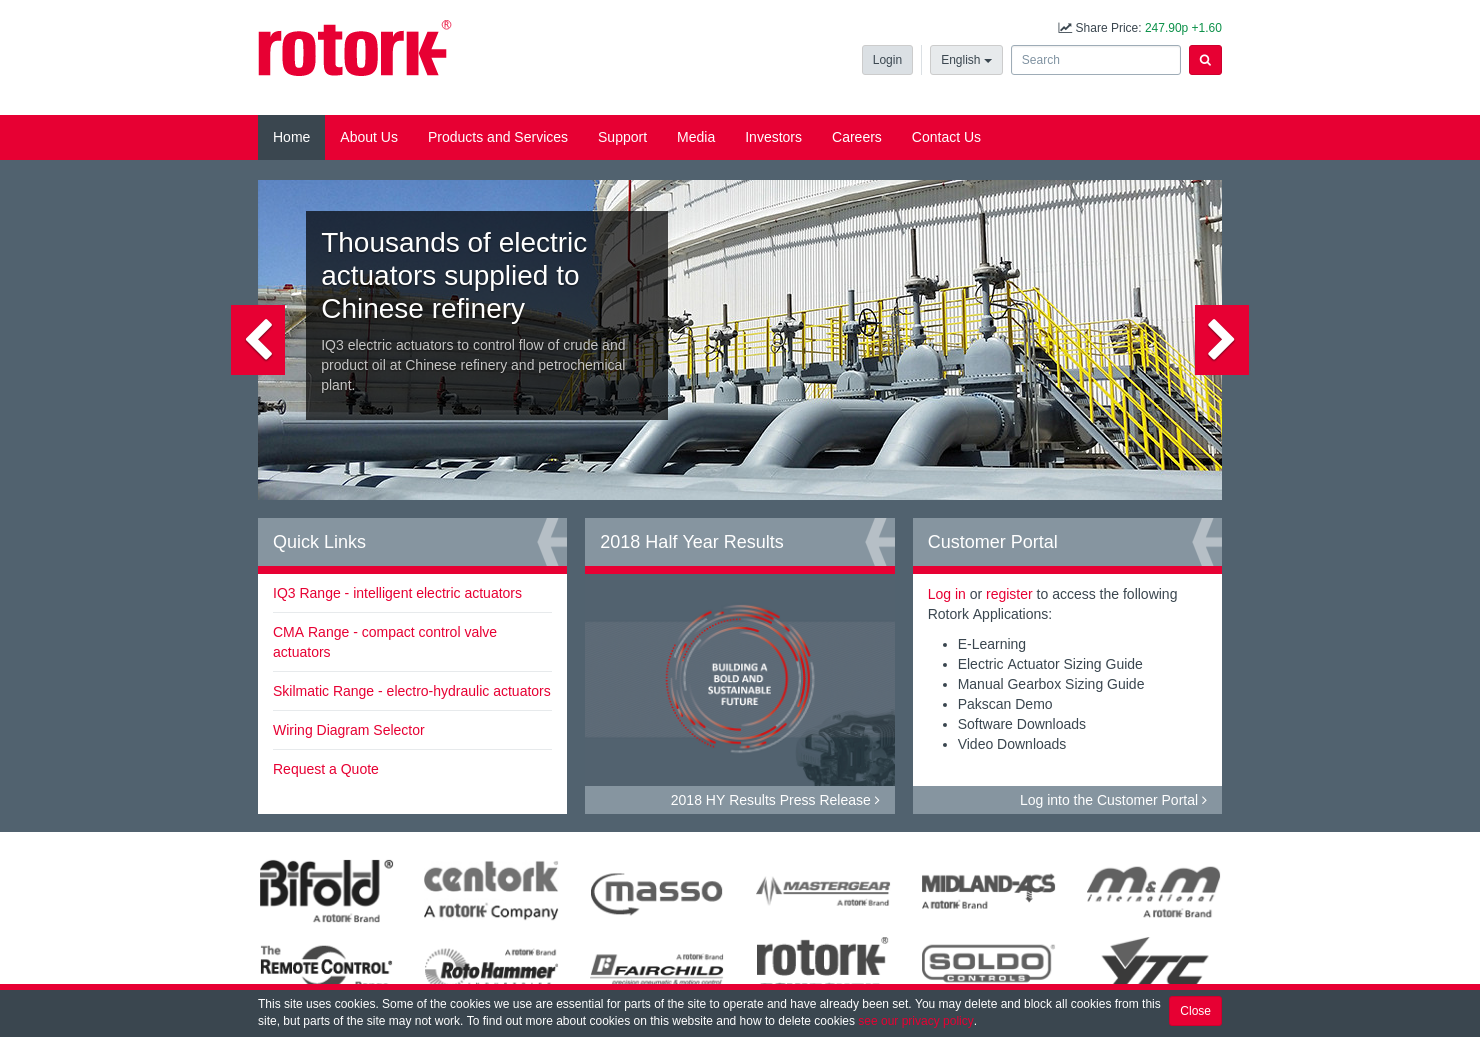 Rotork Home Page